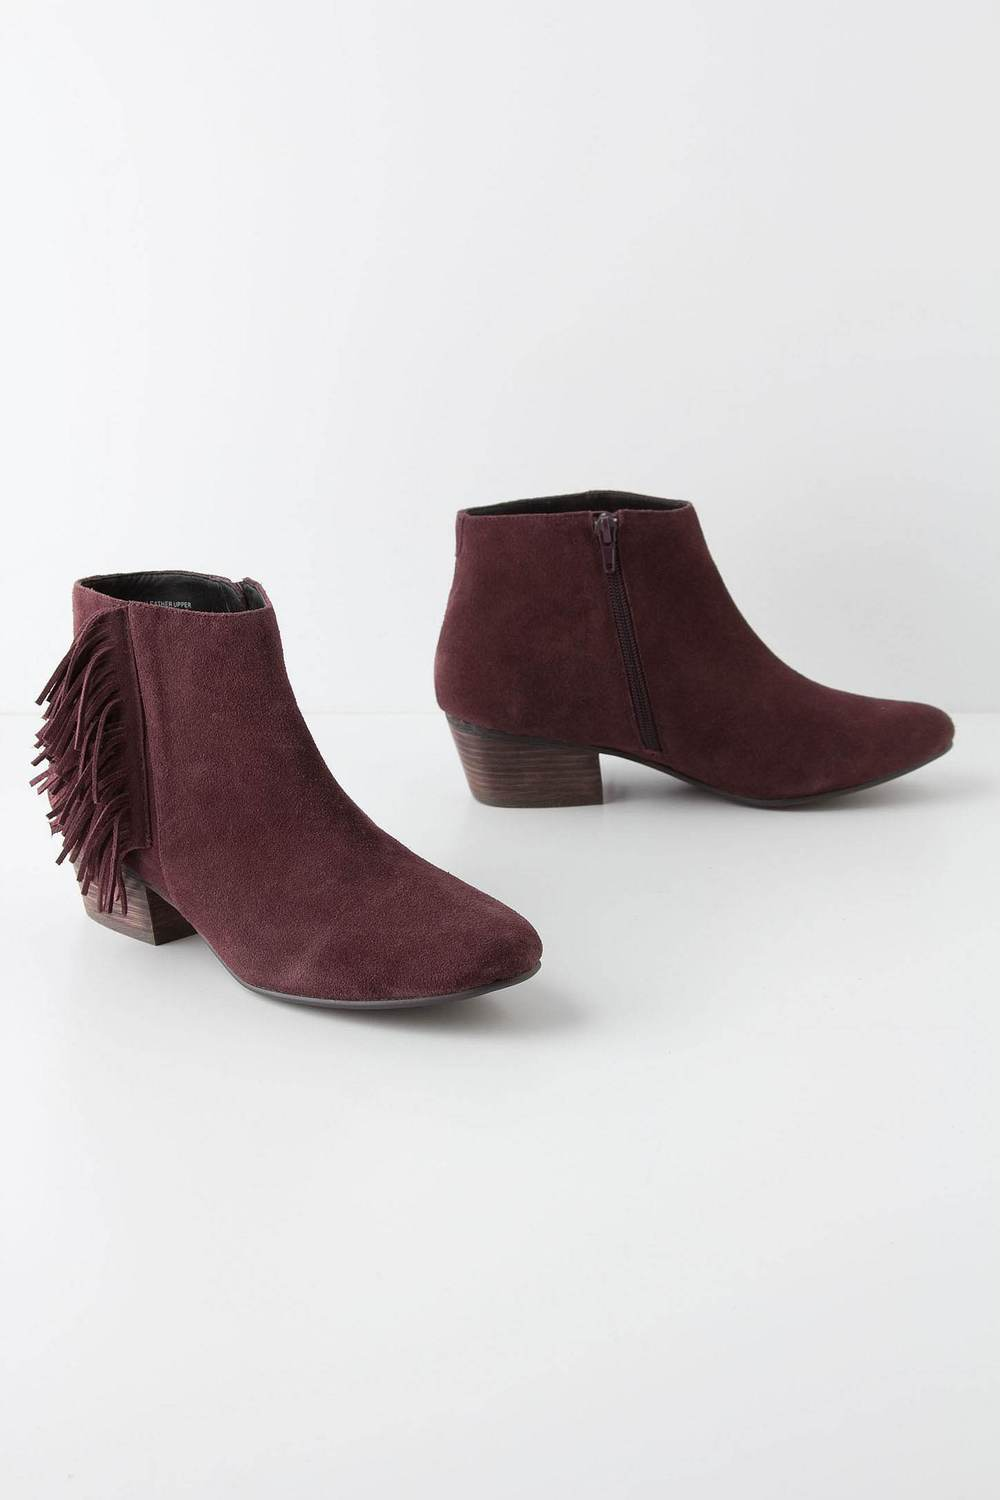 Fringe Ankle Boots - Anthroplogie.jpg